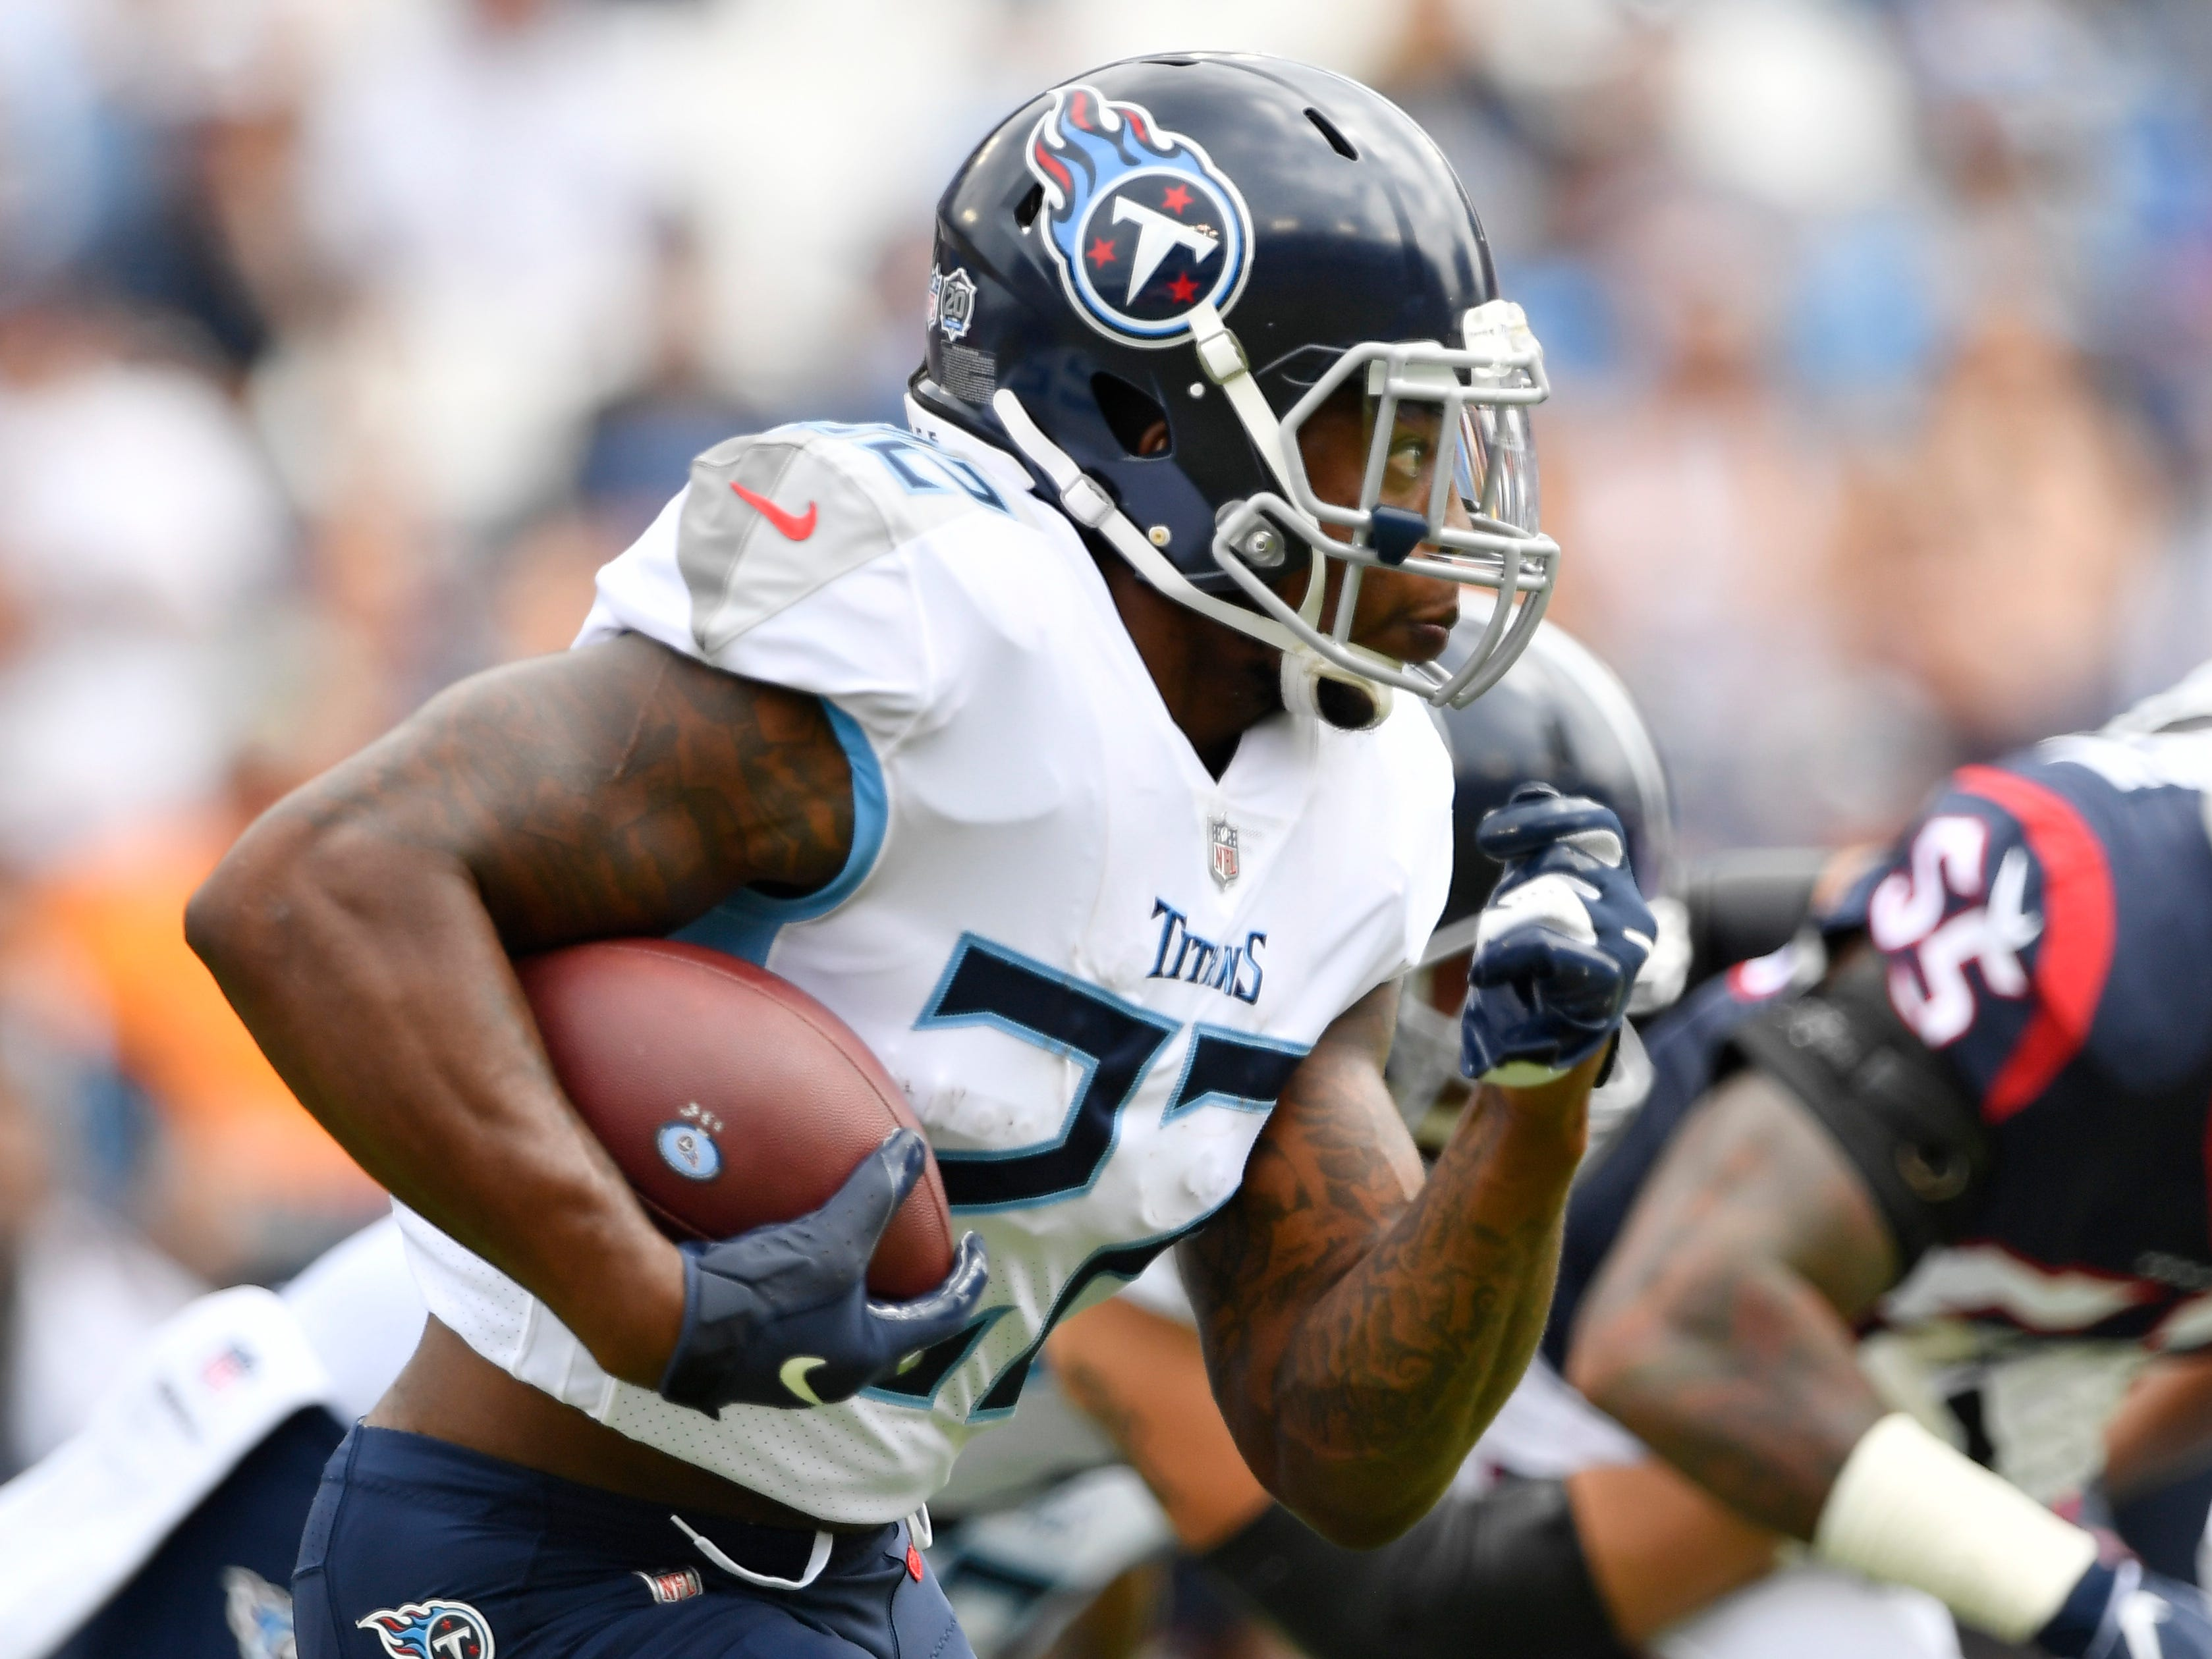 Titans running back Derrick Henry (22) moves the ball in the first quarter at Nissan Stadium Sunday, Sept. 16, 2018, in Nashville, Tenn.